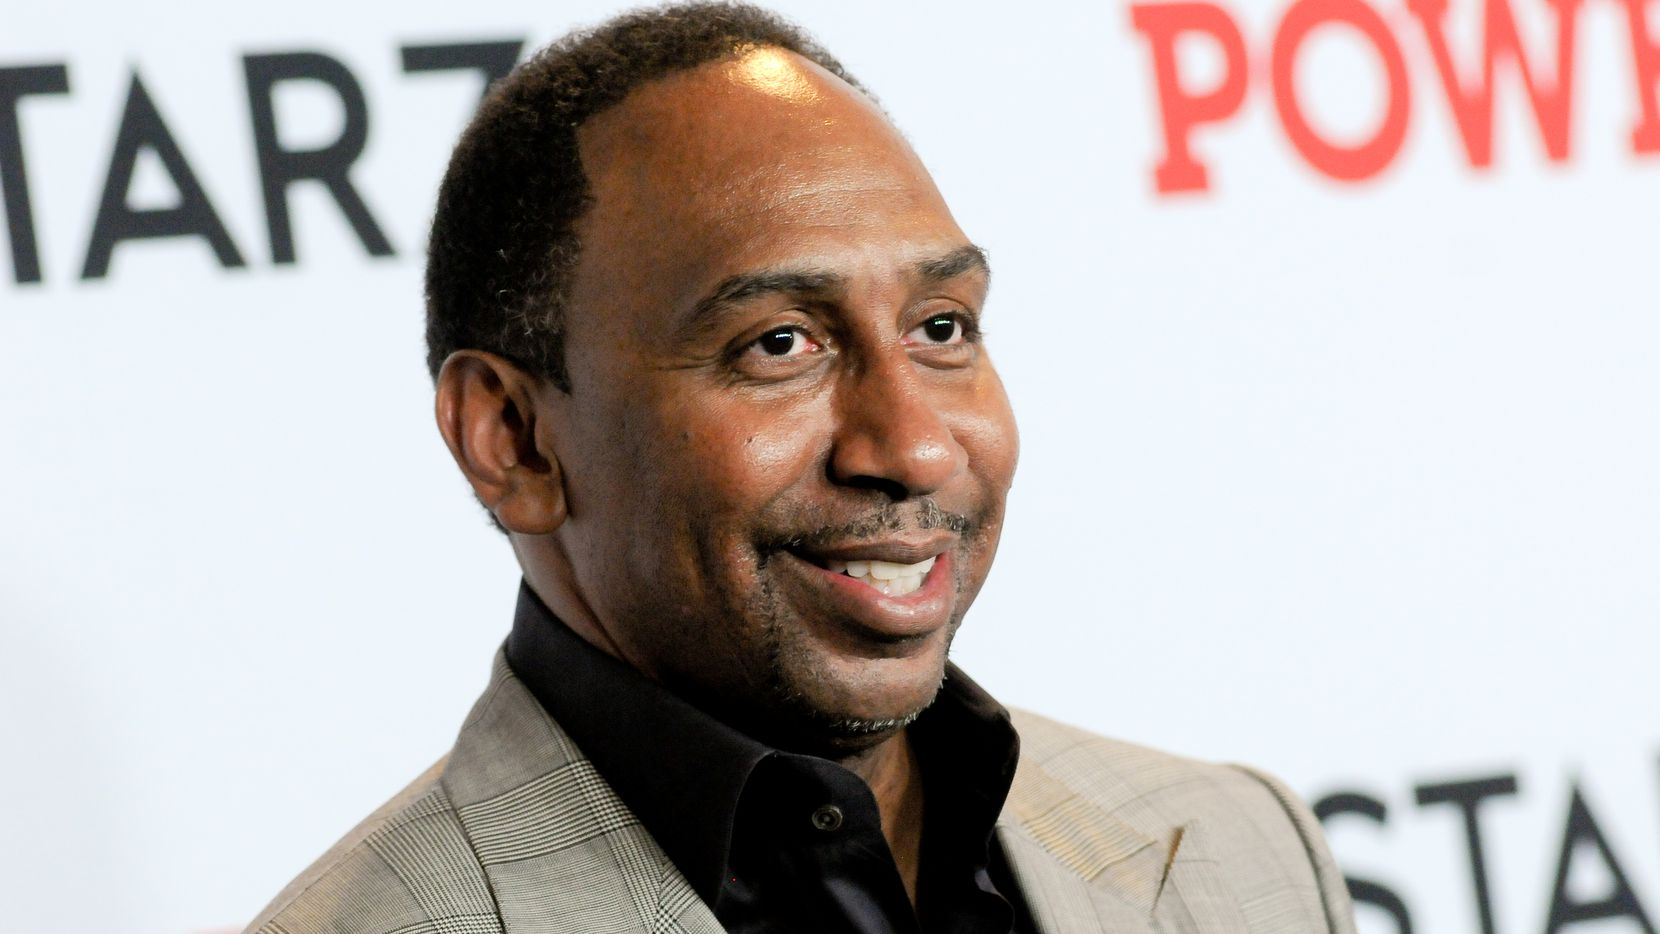 MADISON SQUARE GARDEN, NEW YORK CITY, NY, UNITED STATES - 2019/08/20: Stephen A. Smith attends the Power Final Season Premiere held at Madison Square Garden in New York City.